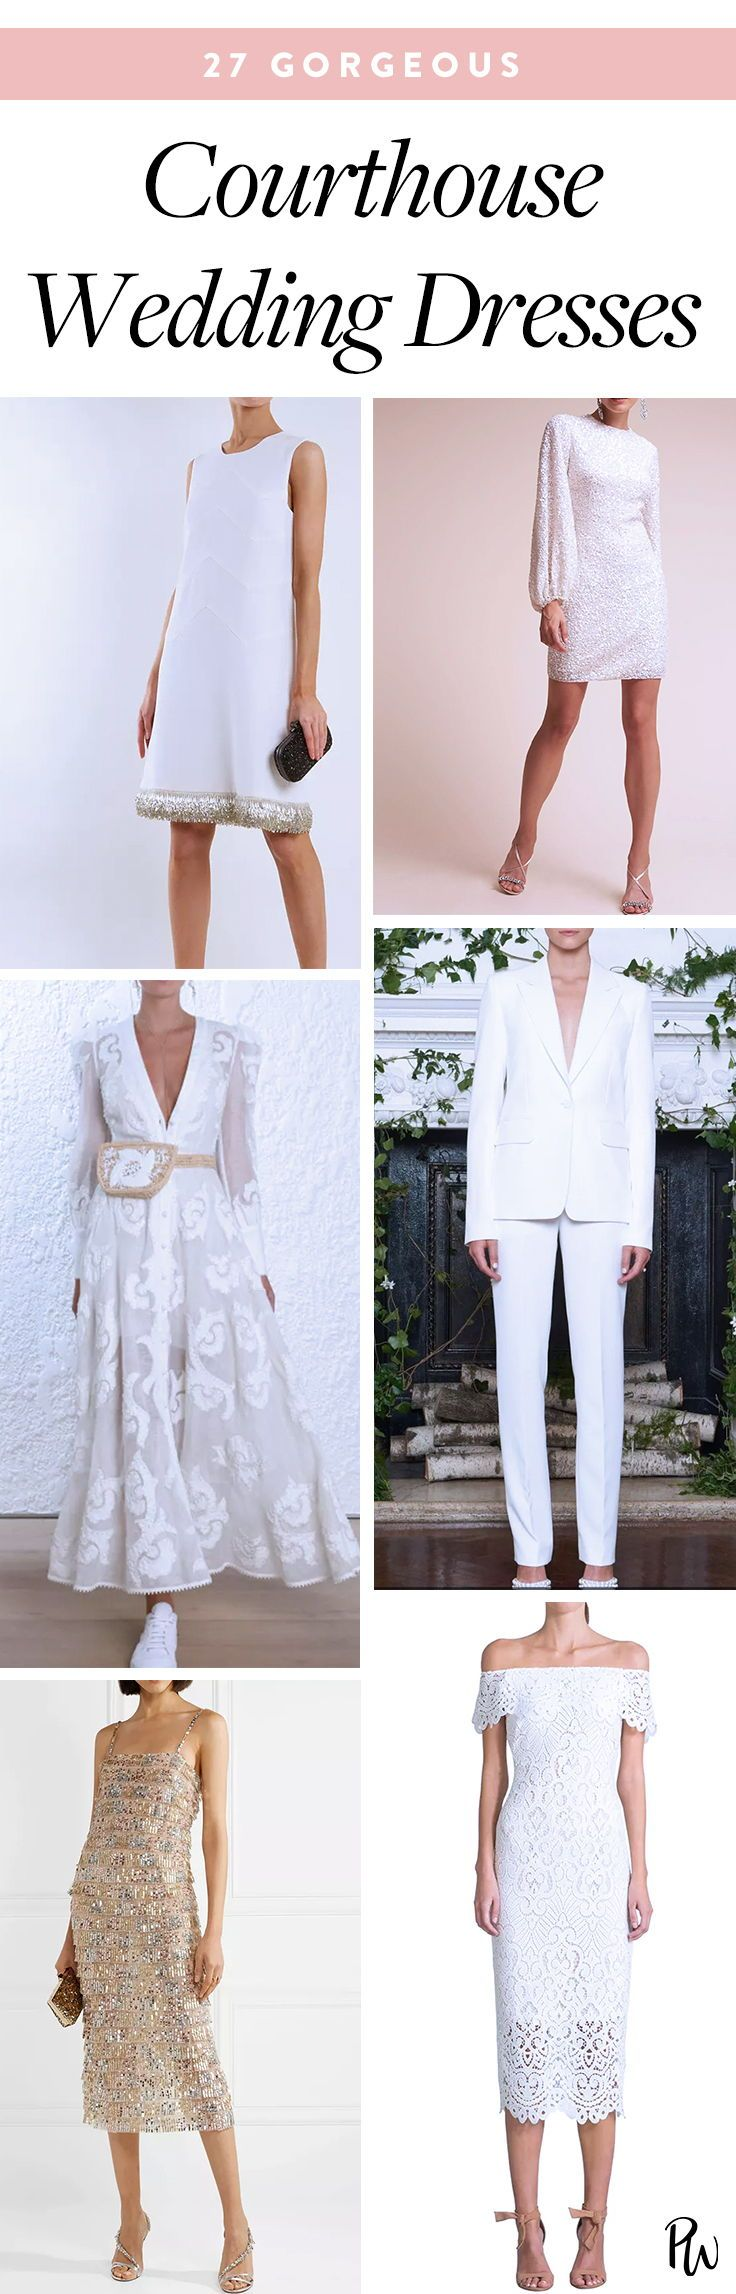 dresses that will look perfect at your courthouse wedding